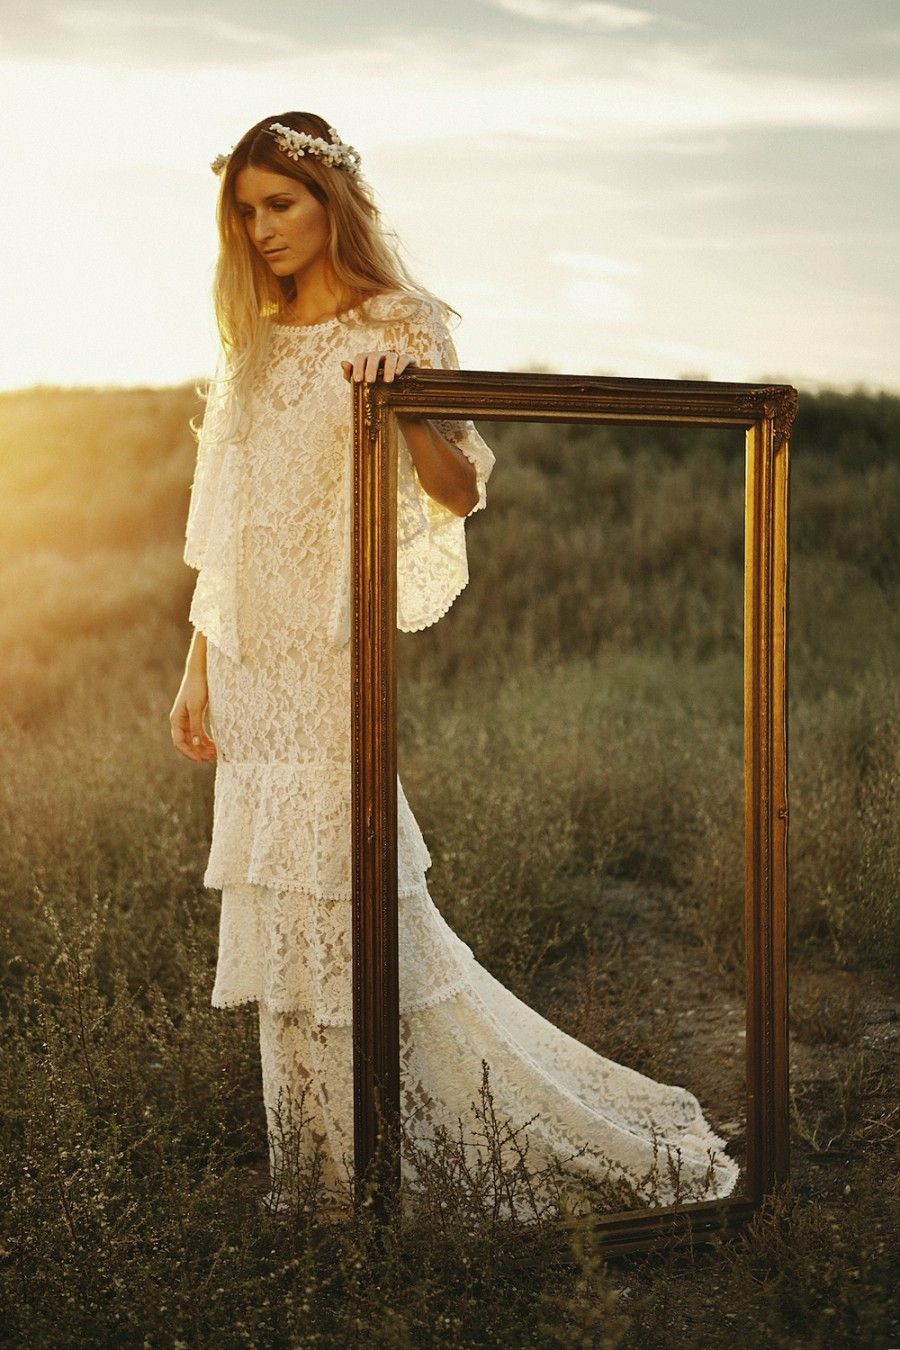 Lace hippie wedding dress  Tiered lace boho wedding dress by indie bridal label Dreamers